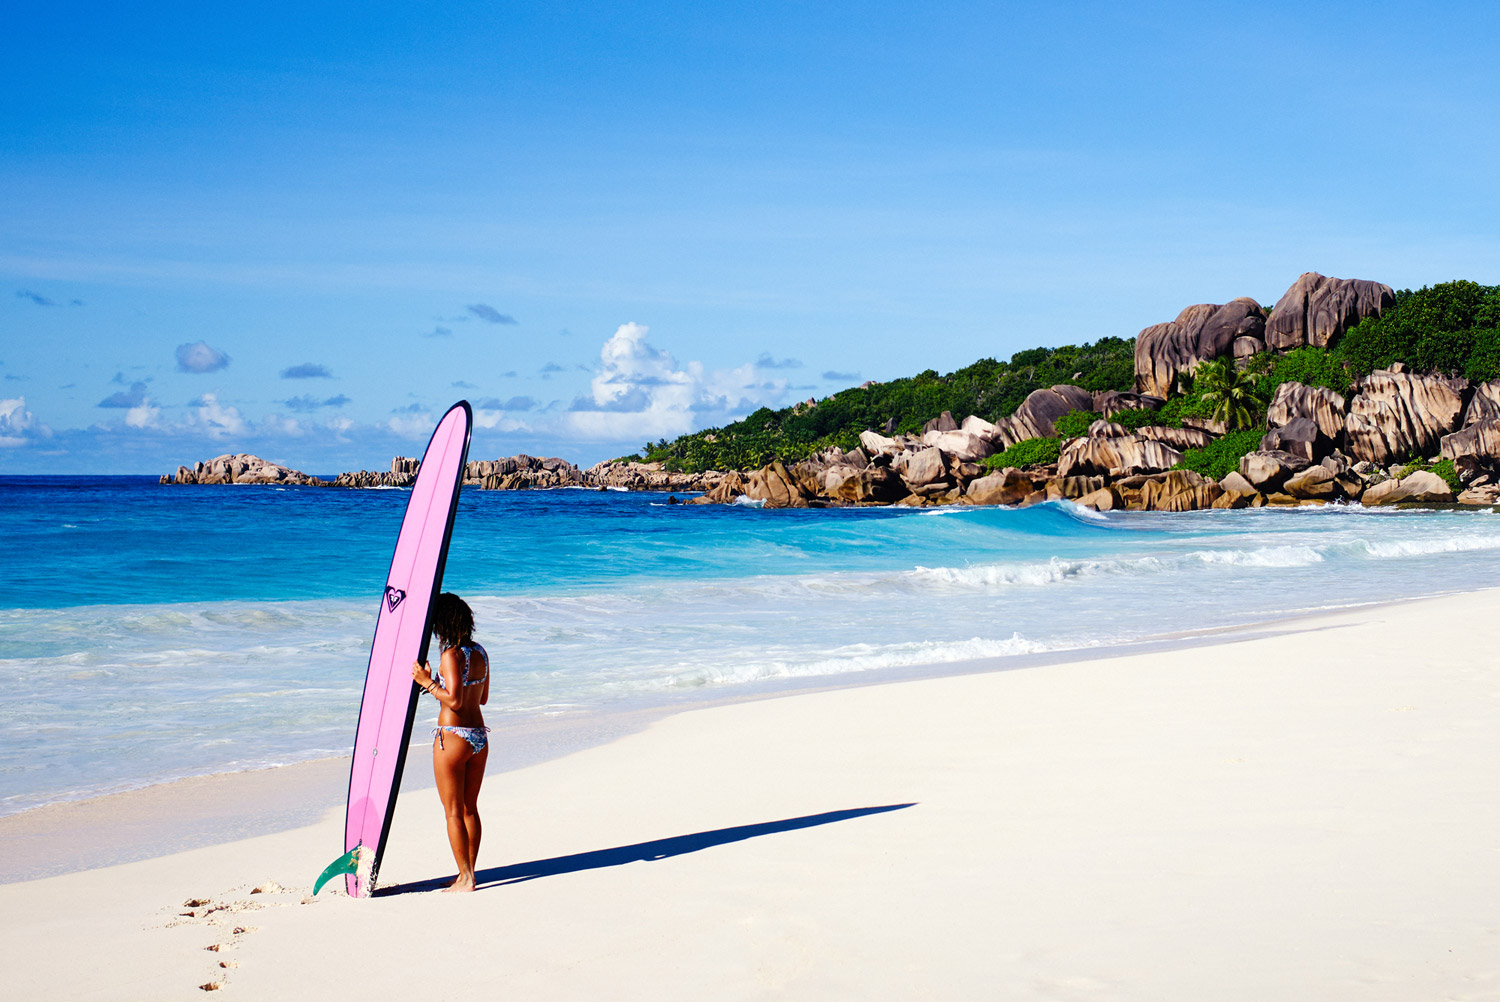 Take a #ROXYSneakPeek into our Seychelles Adventure